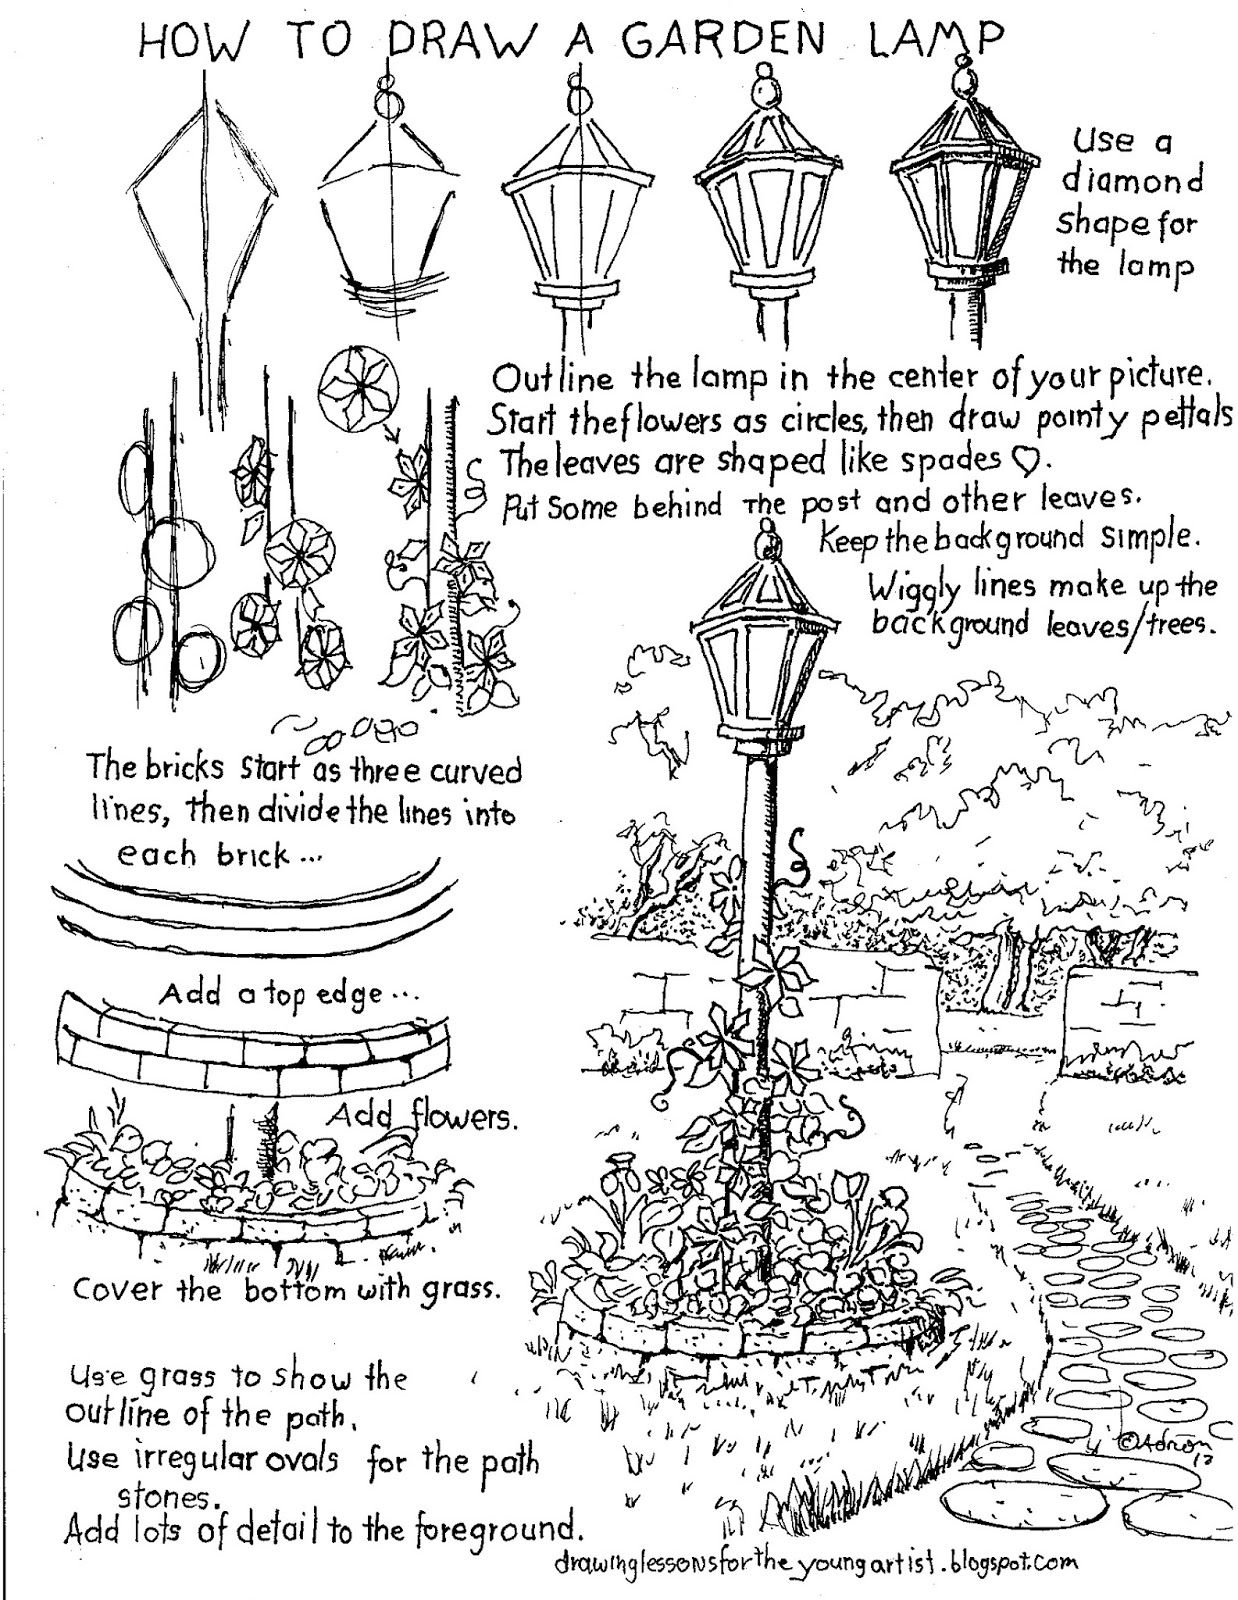 How To Draw Worksheets For The Young Artist How To Draw A Garden Lamp Post